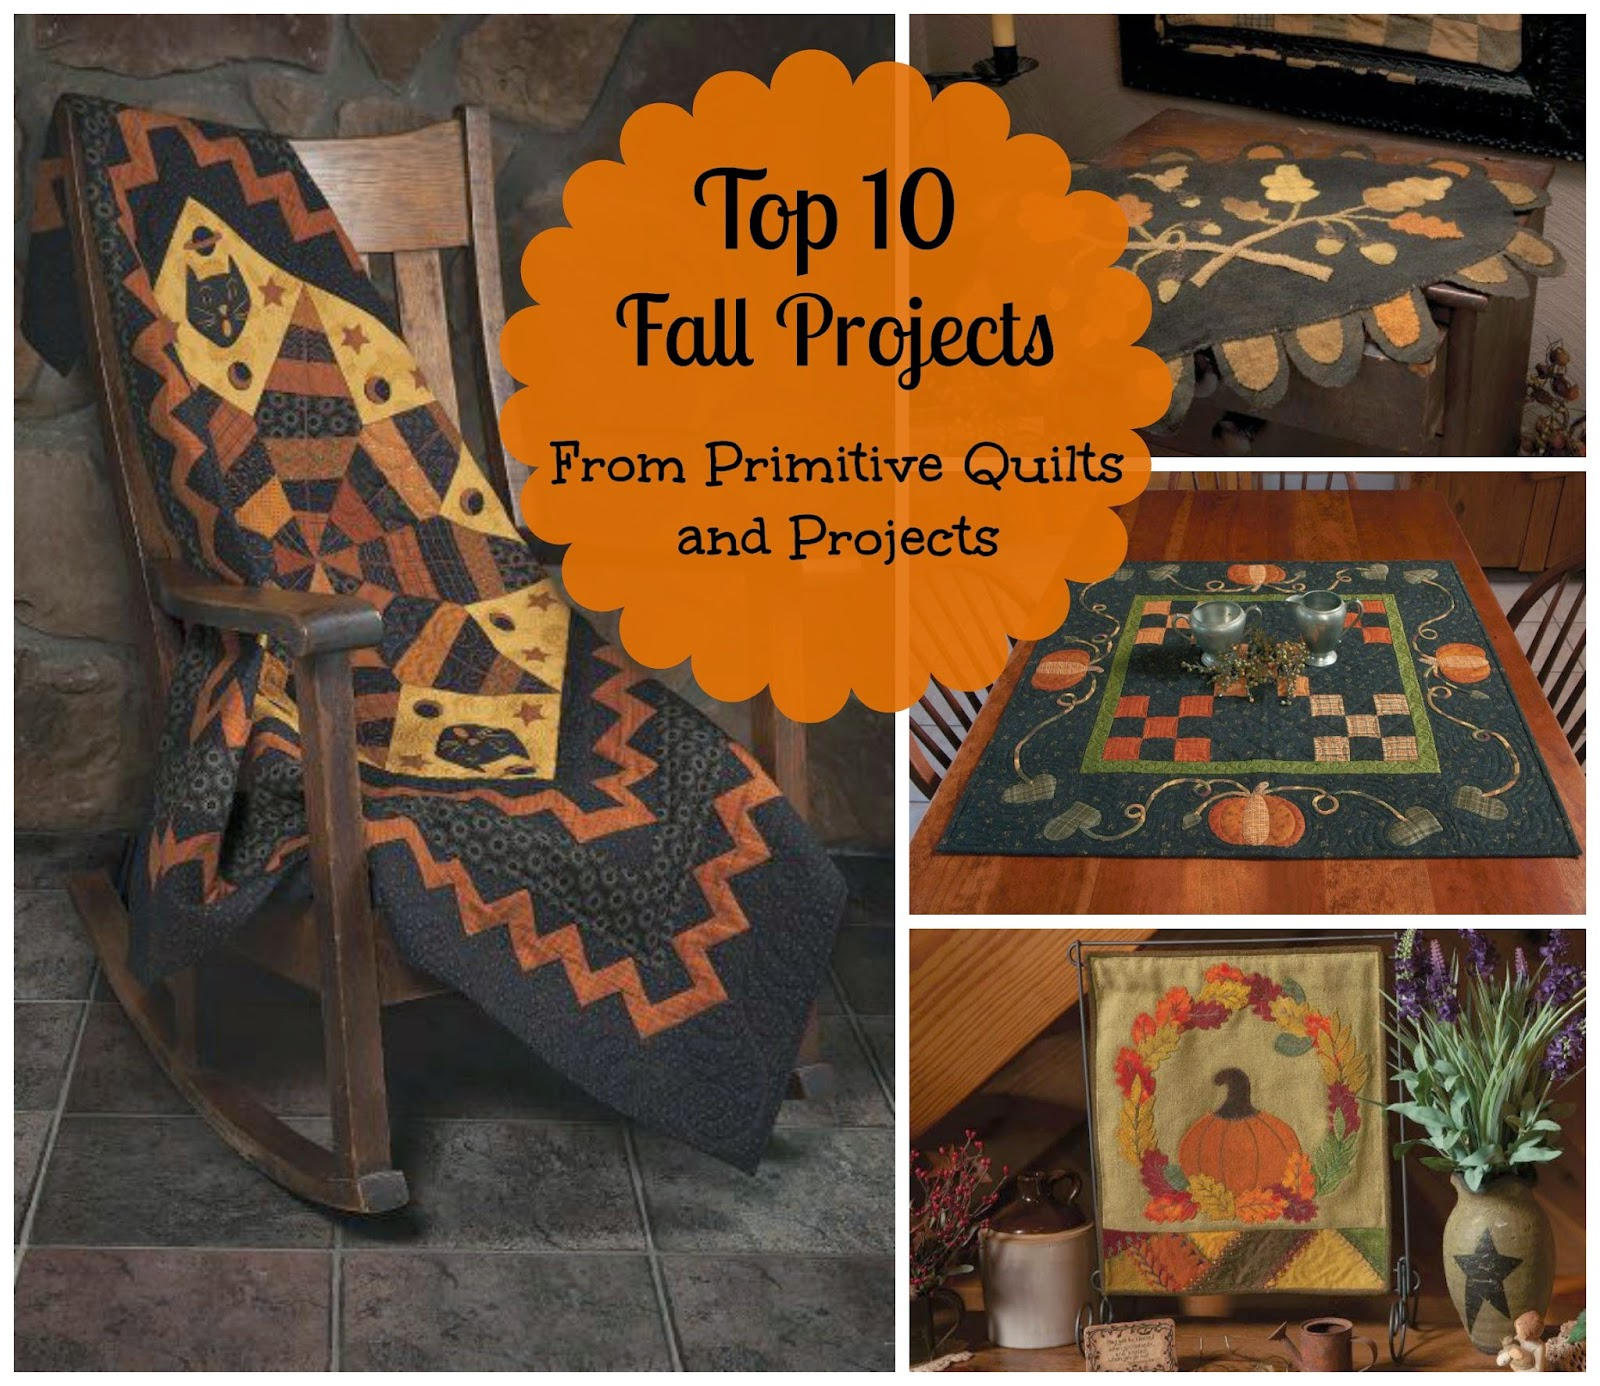 Top 10 Fall Projects